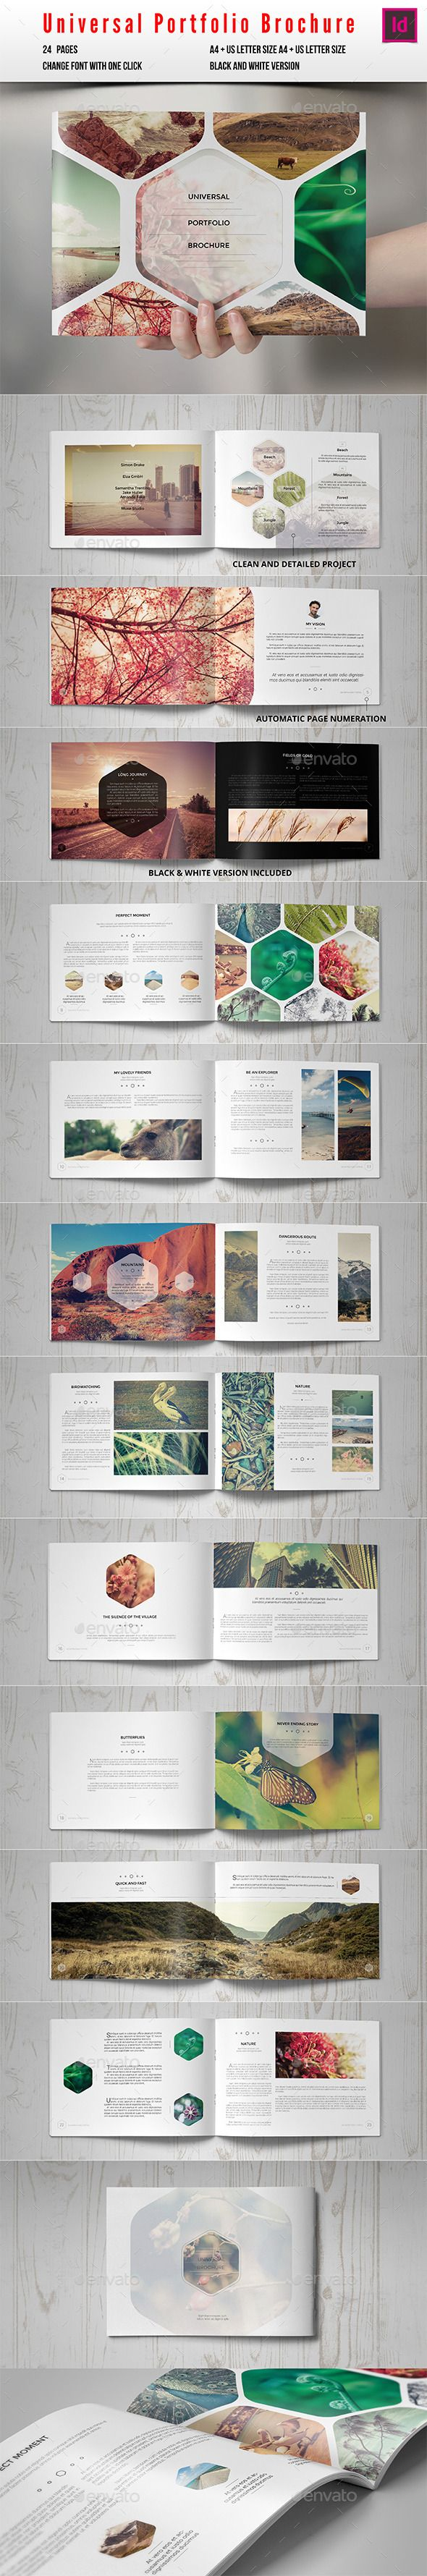 Beautiful design, balance of pictures, geometric motif, colors. A really cool brochure